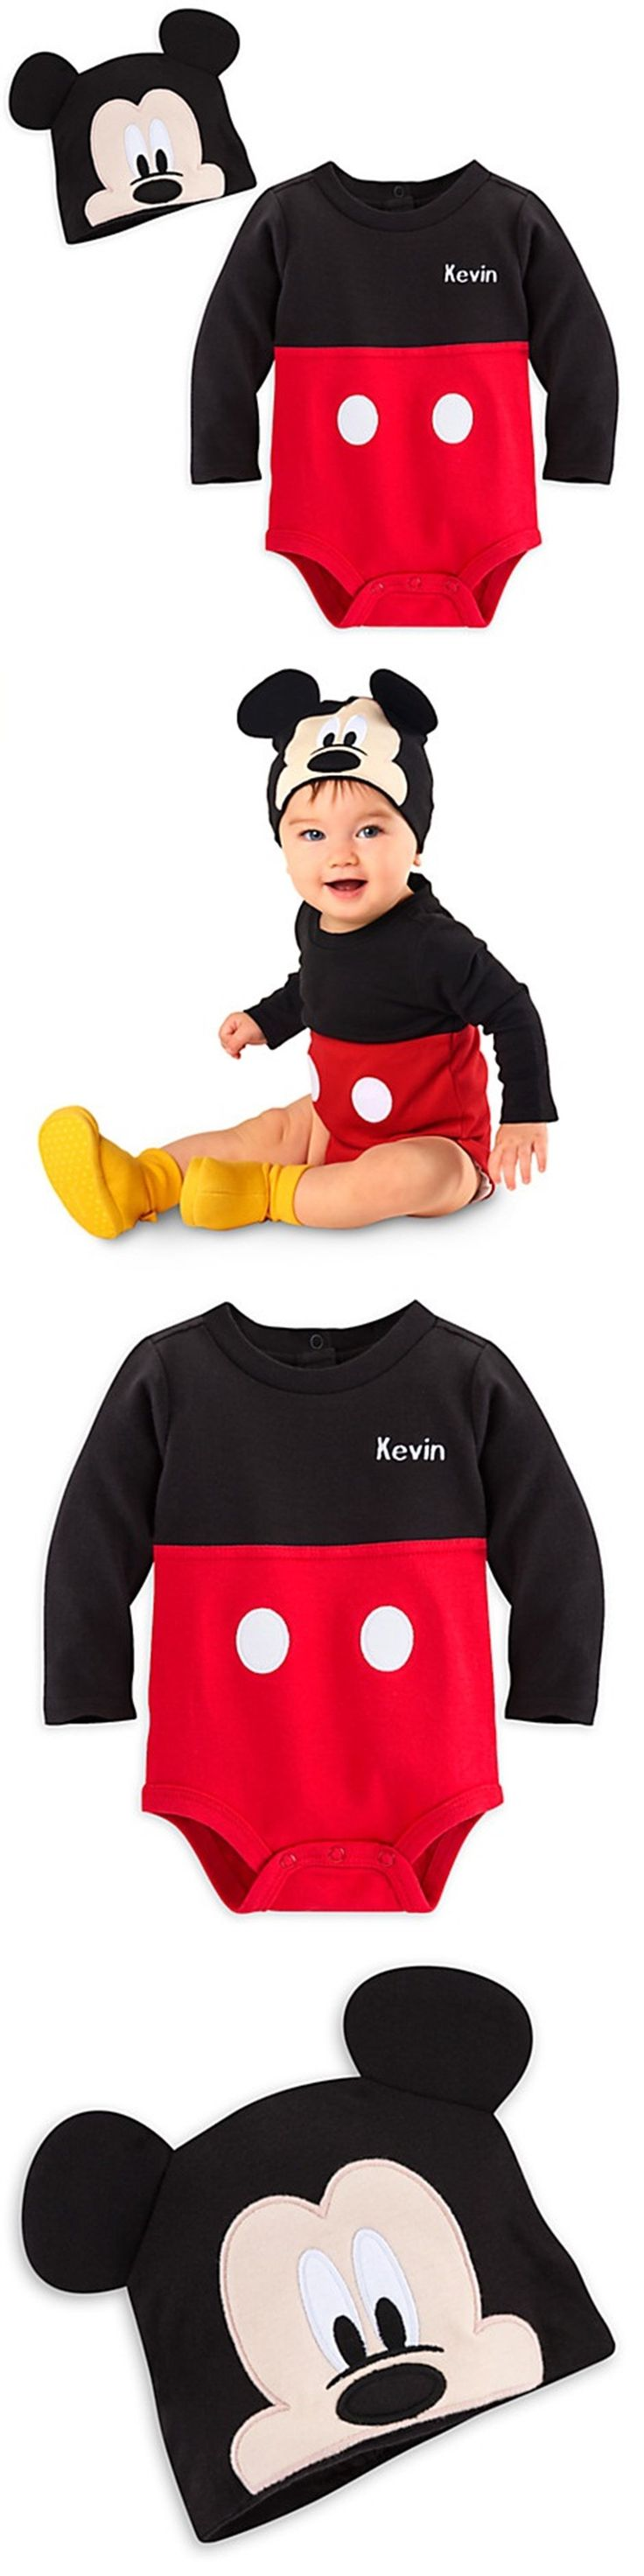 Halloween Costumes Kids: Disney Store Mickey Mouse Dress Up Baby Costume Halloween Ears 9 12 18 24 Mo New -> BUY IT NOW ONLY: $32.95 on eBay!